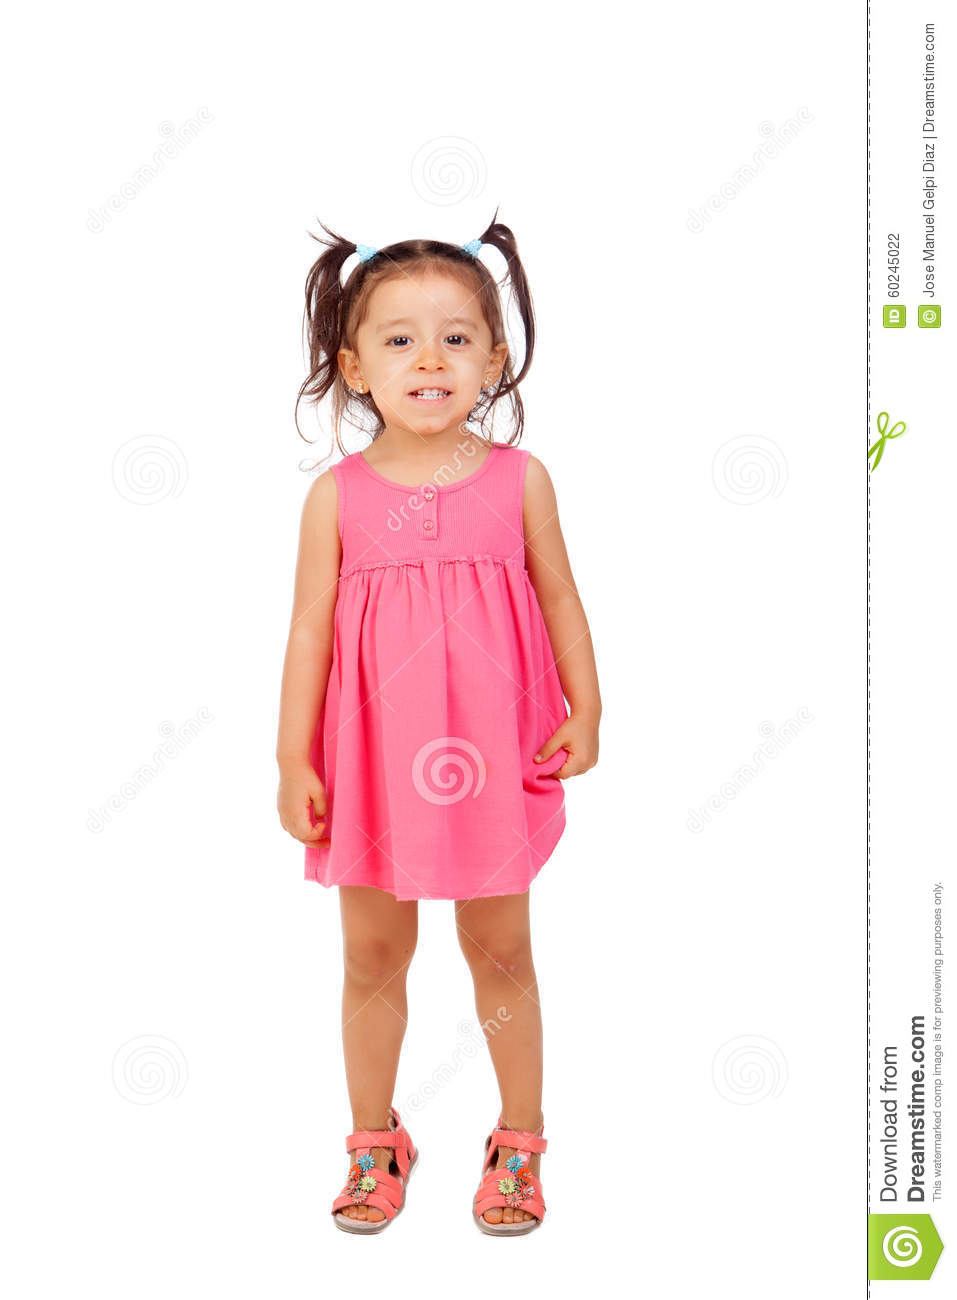 3f2273f6c604 Funny Little Girl With Pigtails And Pink Dress Stock Photo - Image ...